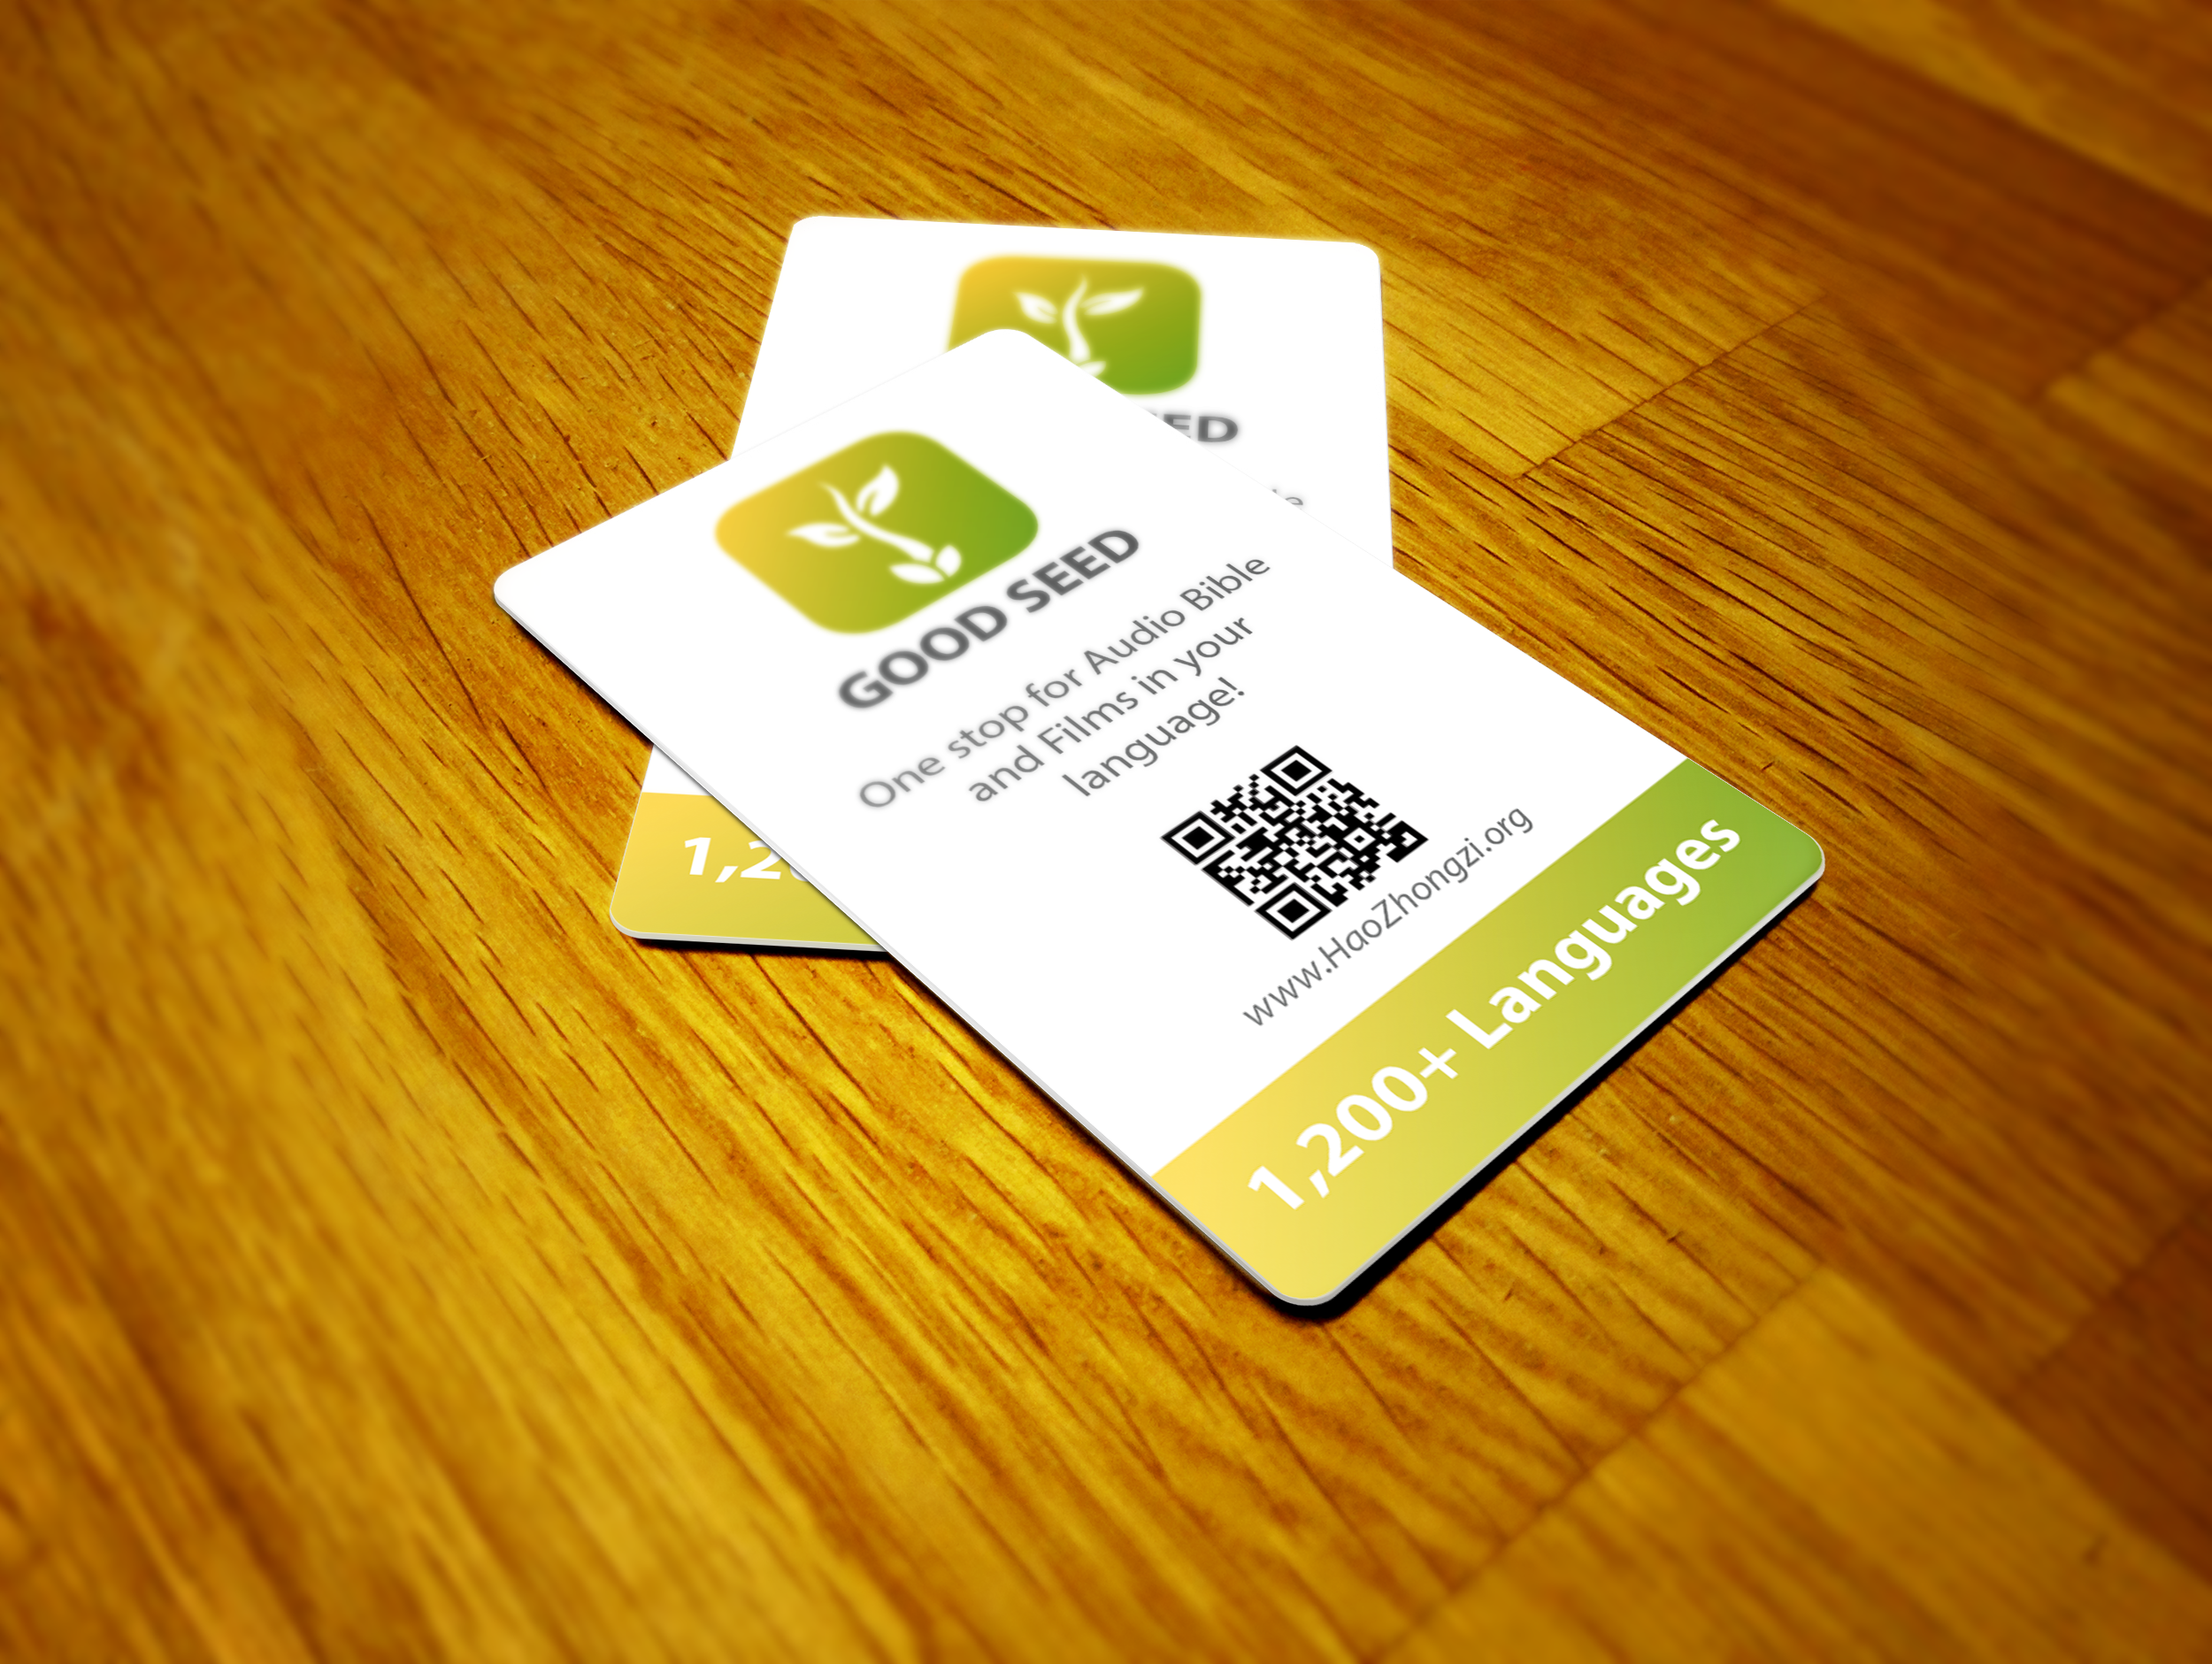 The App Buisness card